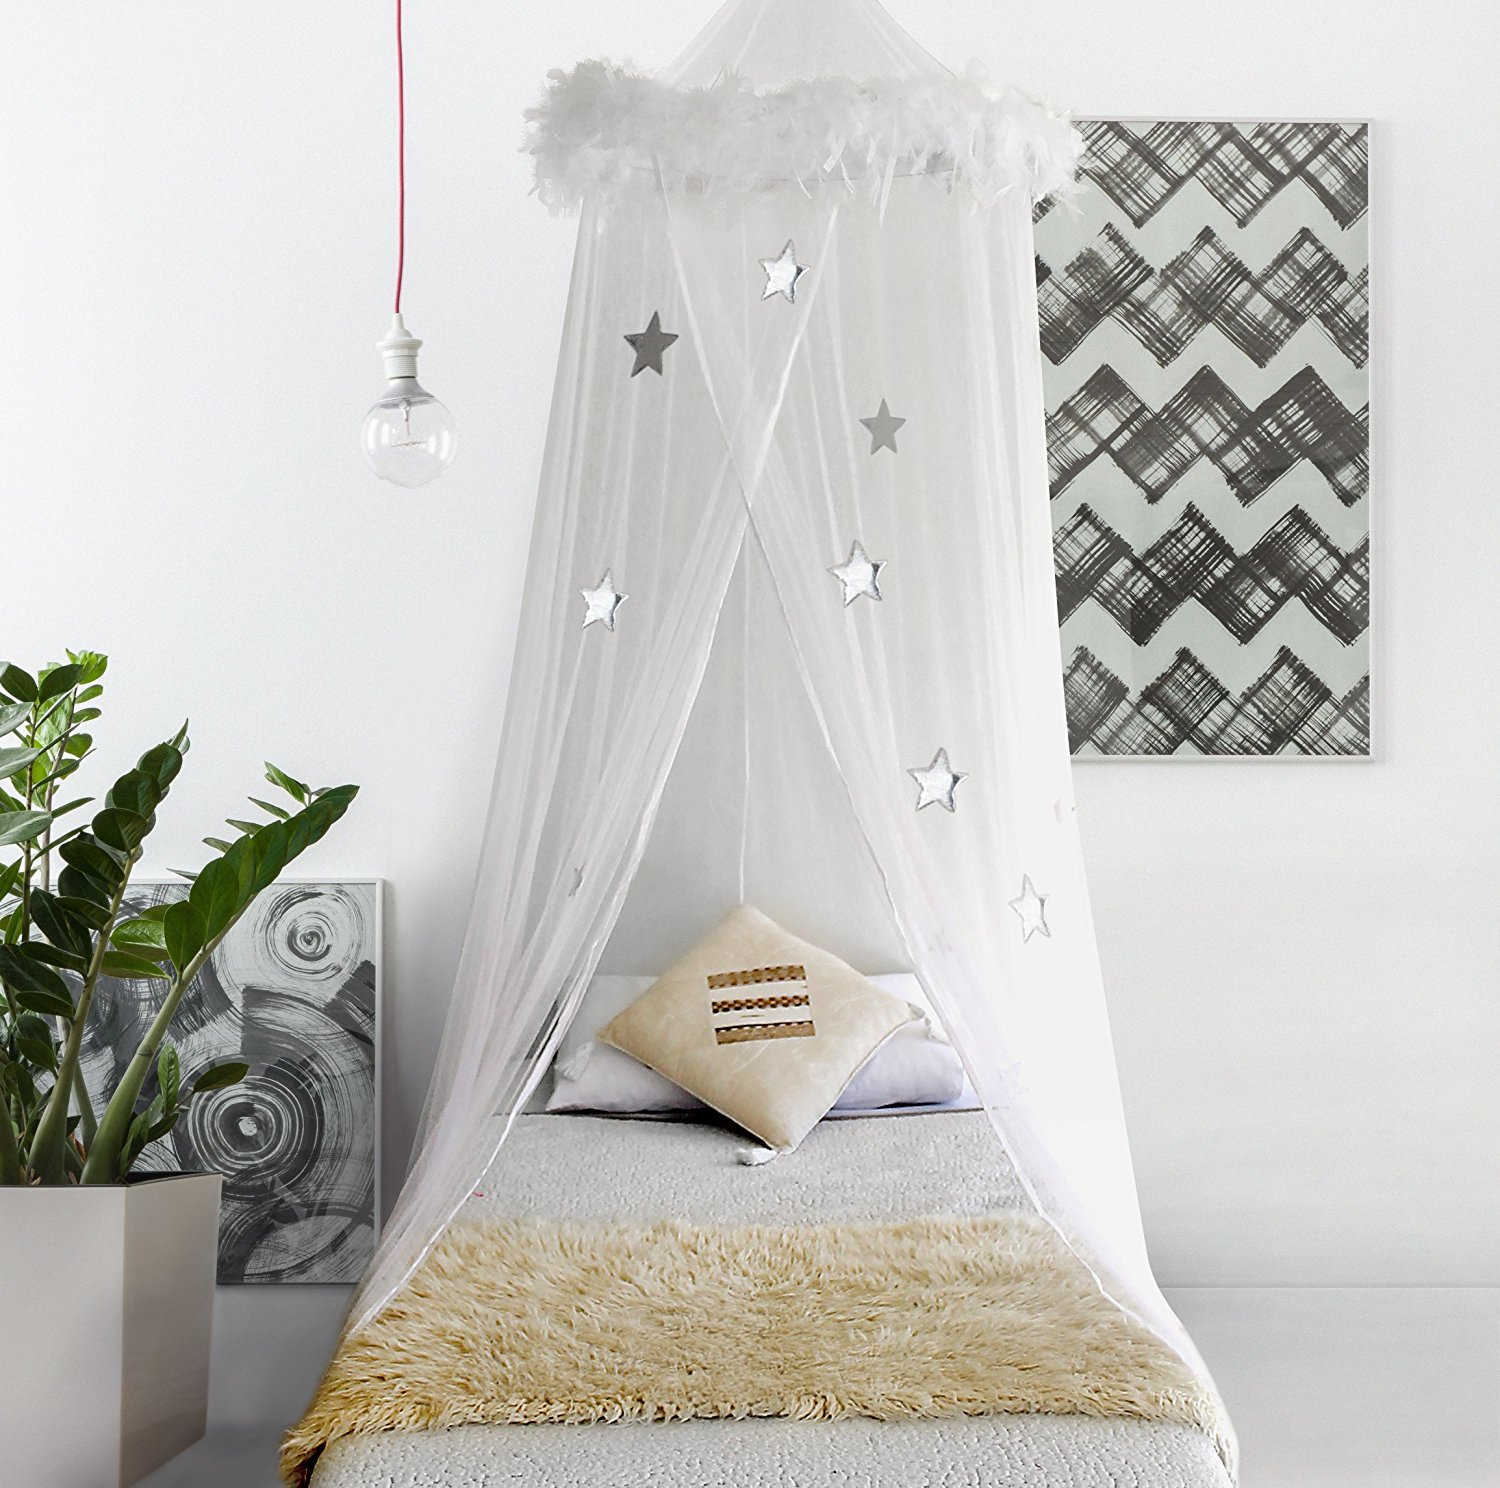 Canopy Mosquito Net Curtains with feathers and stars & Bed Canopy Mosquito Net Curtains with Feathers and Stars - Moski Net